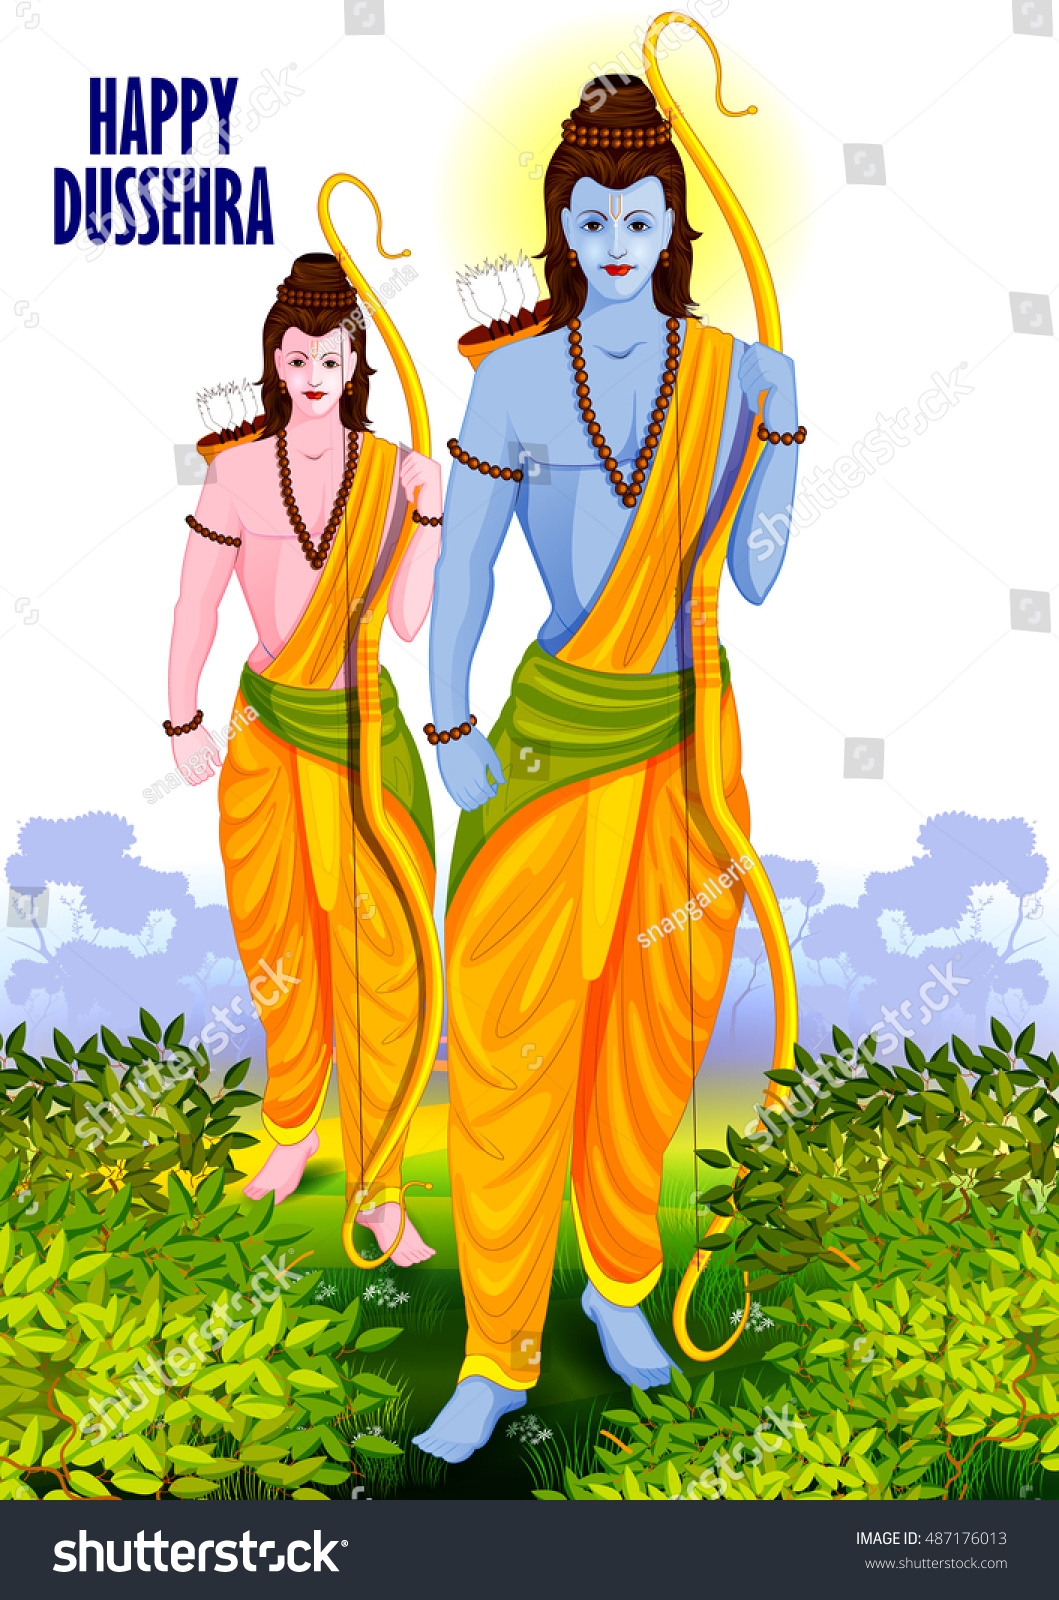 easy to edit vector illustration of Lord Rama and Laxmana in Happy Dussehra background showing festival of India